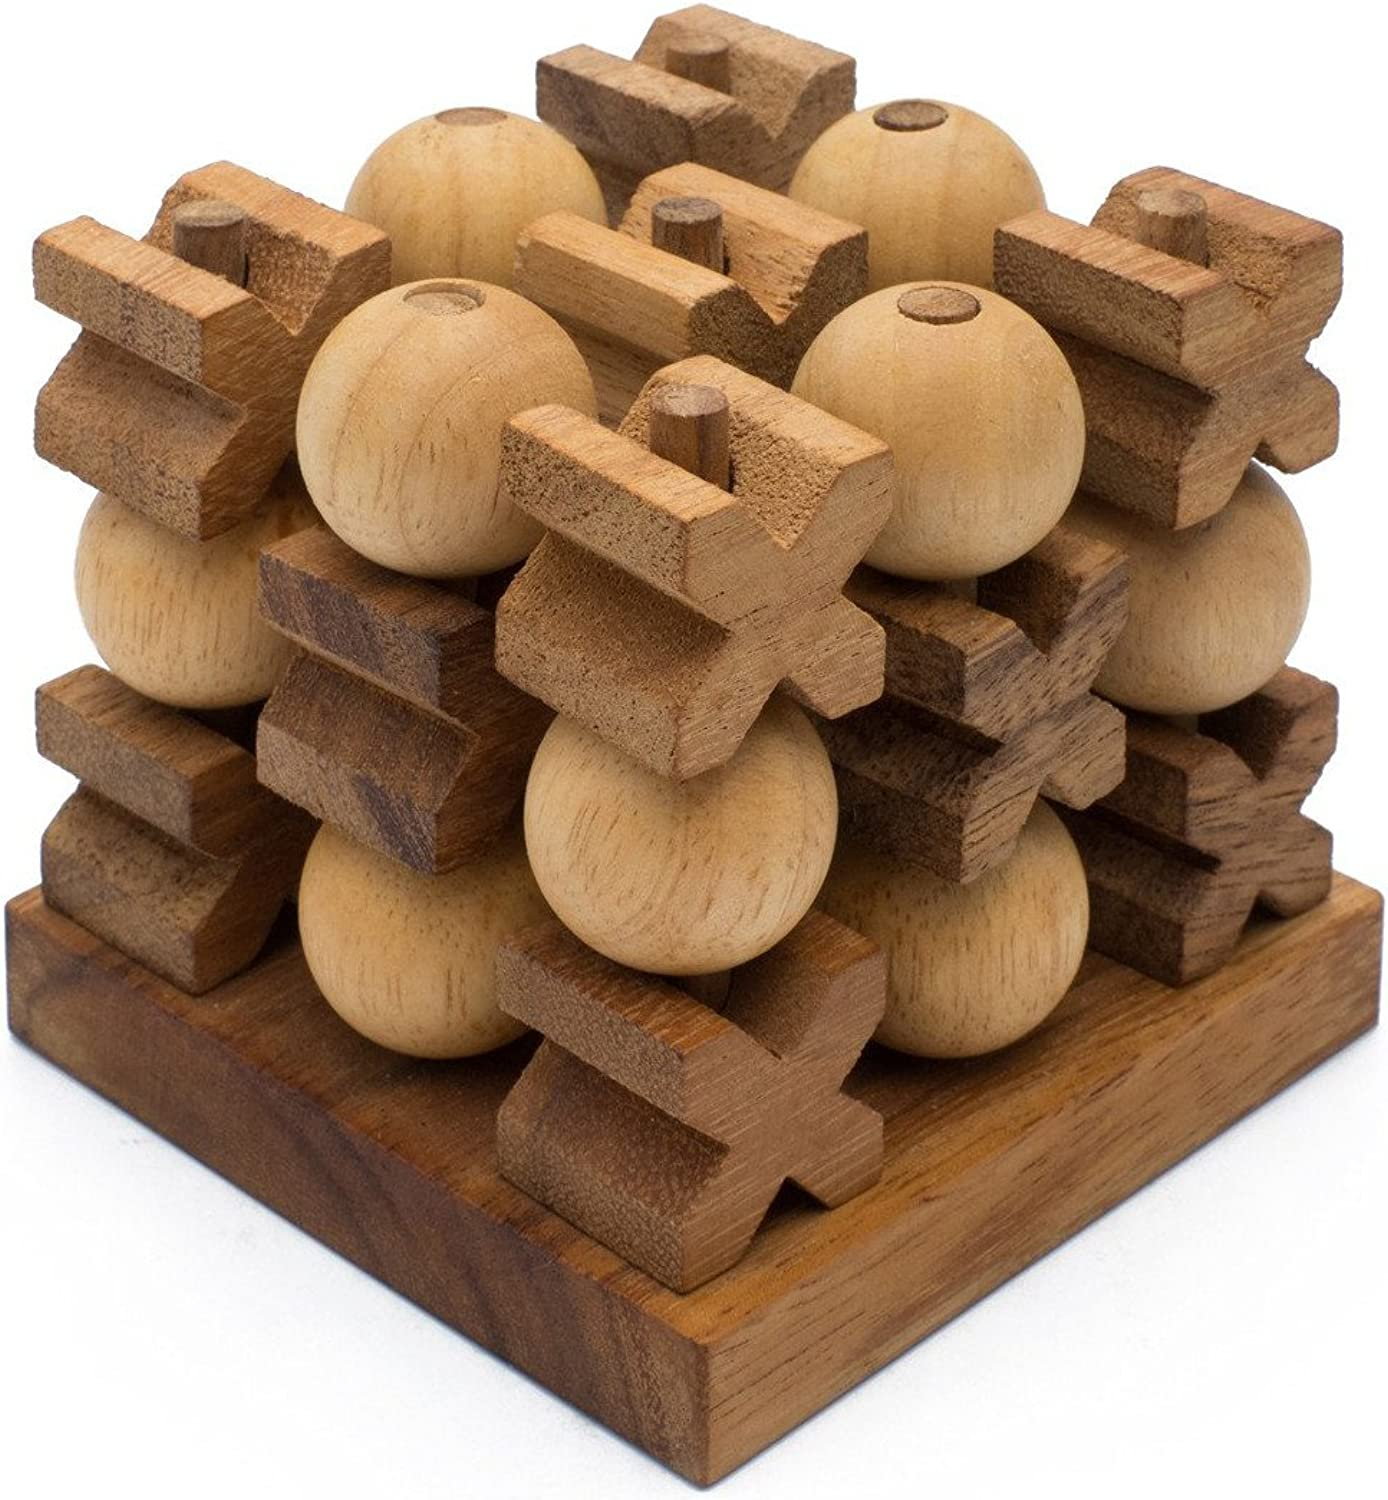 Siam Mandalay Wooden 3D Tic Tac Toe XOXO  Handmade & Organic Traditional Wood Game for Adults from SiamMandalay with SM Gift Box(Pictured)